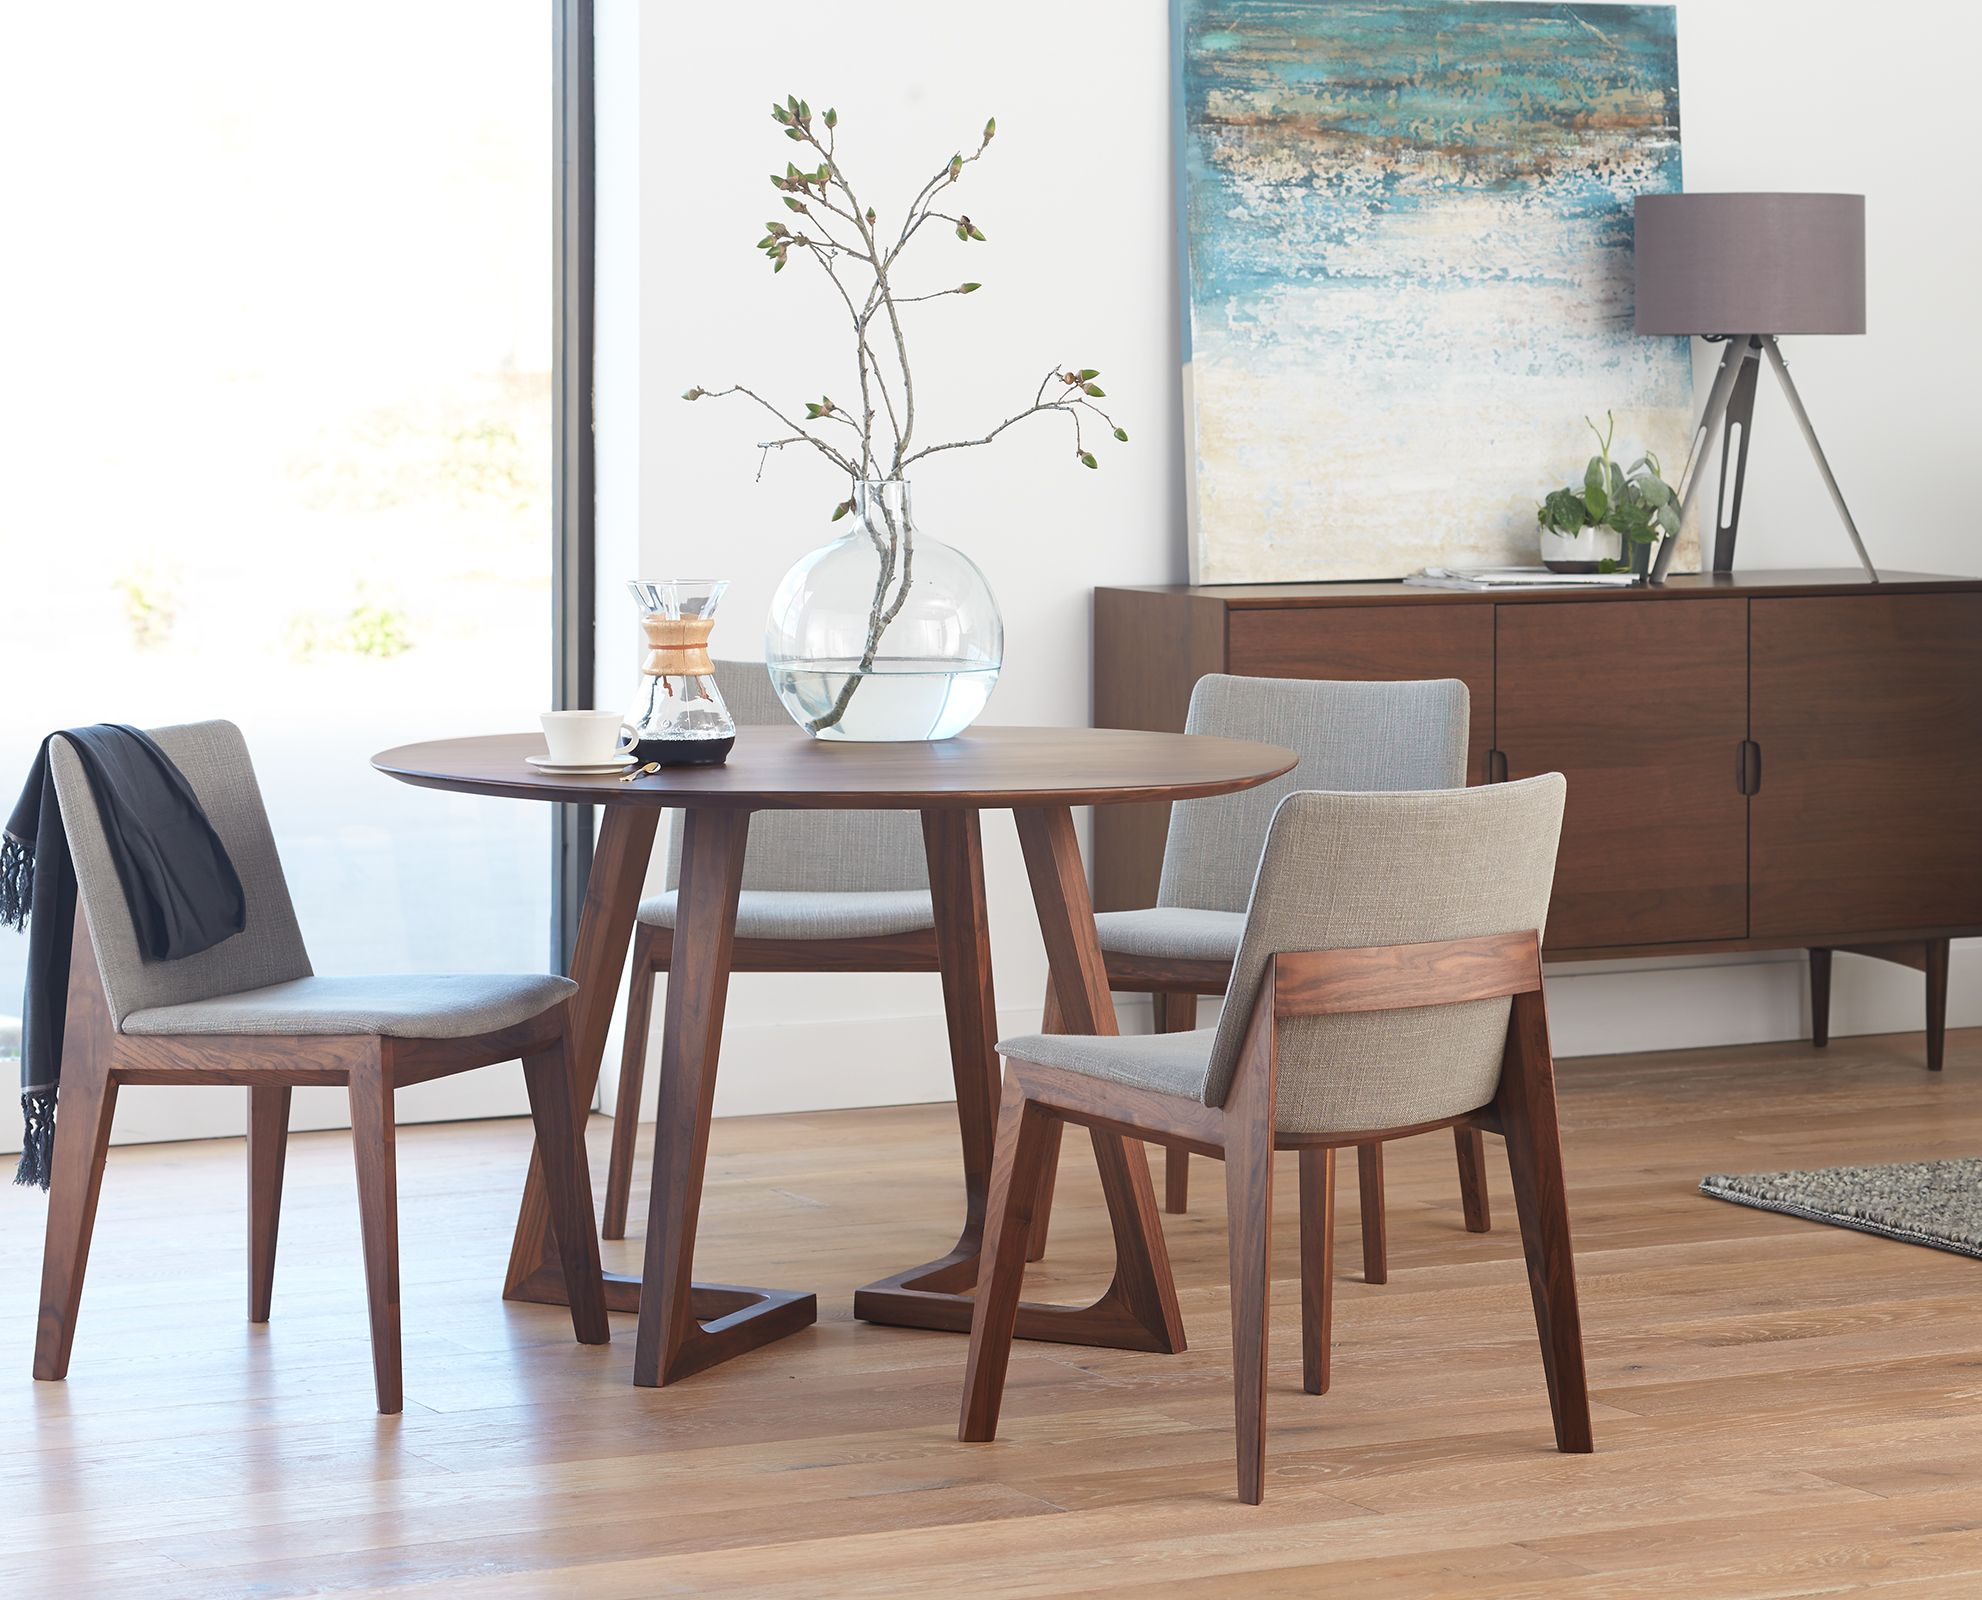 Dining Room Table Sofa Sofas And Chairs Mn Round From Dania Condo Pinterest